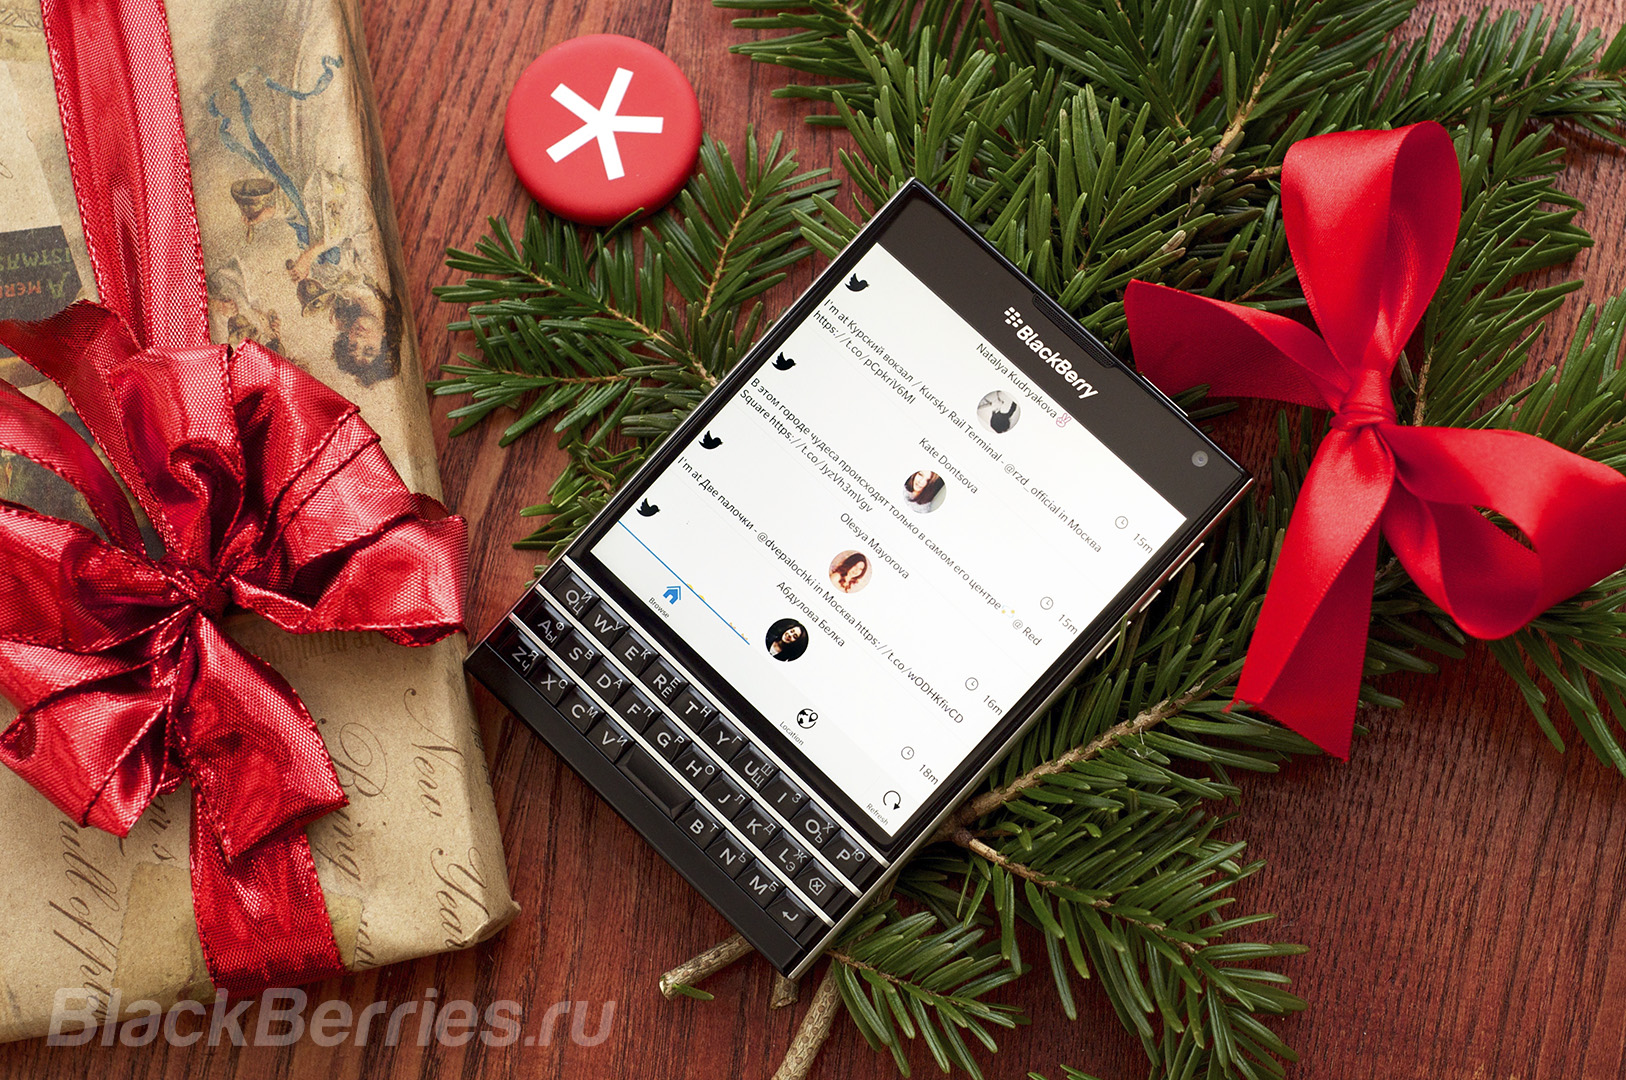 BlackBerry-New-Year-Apps-12